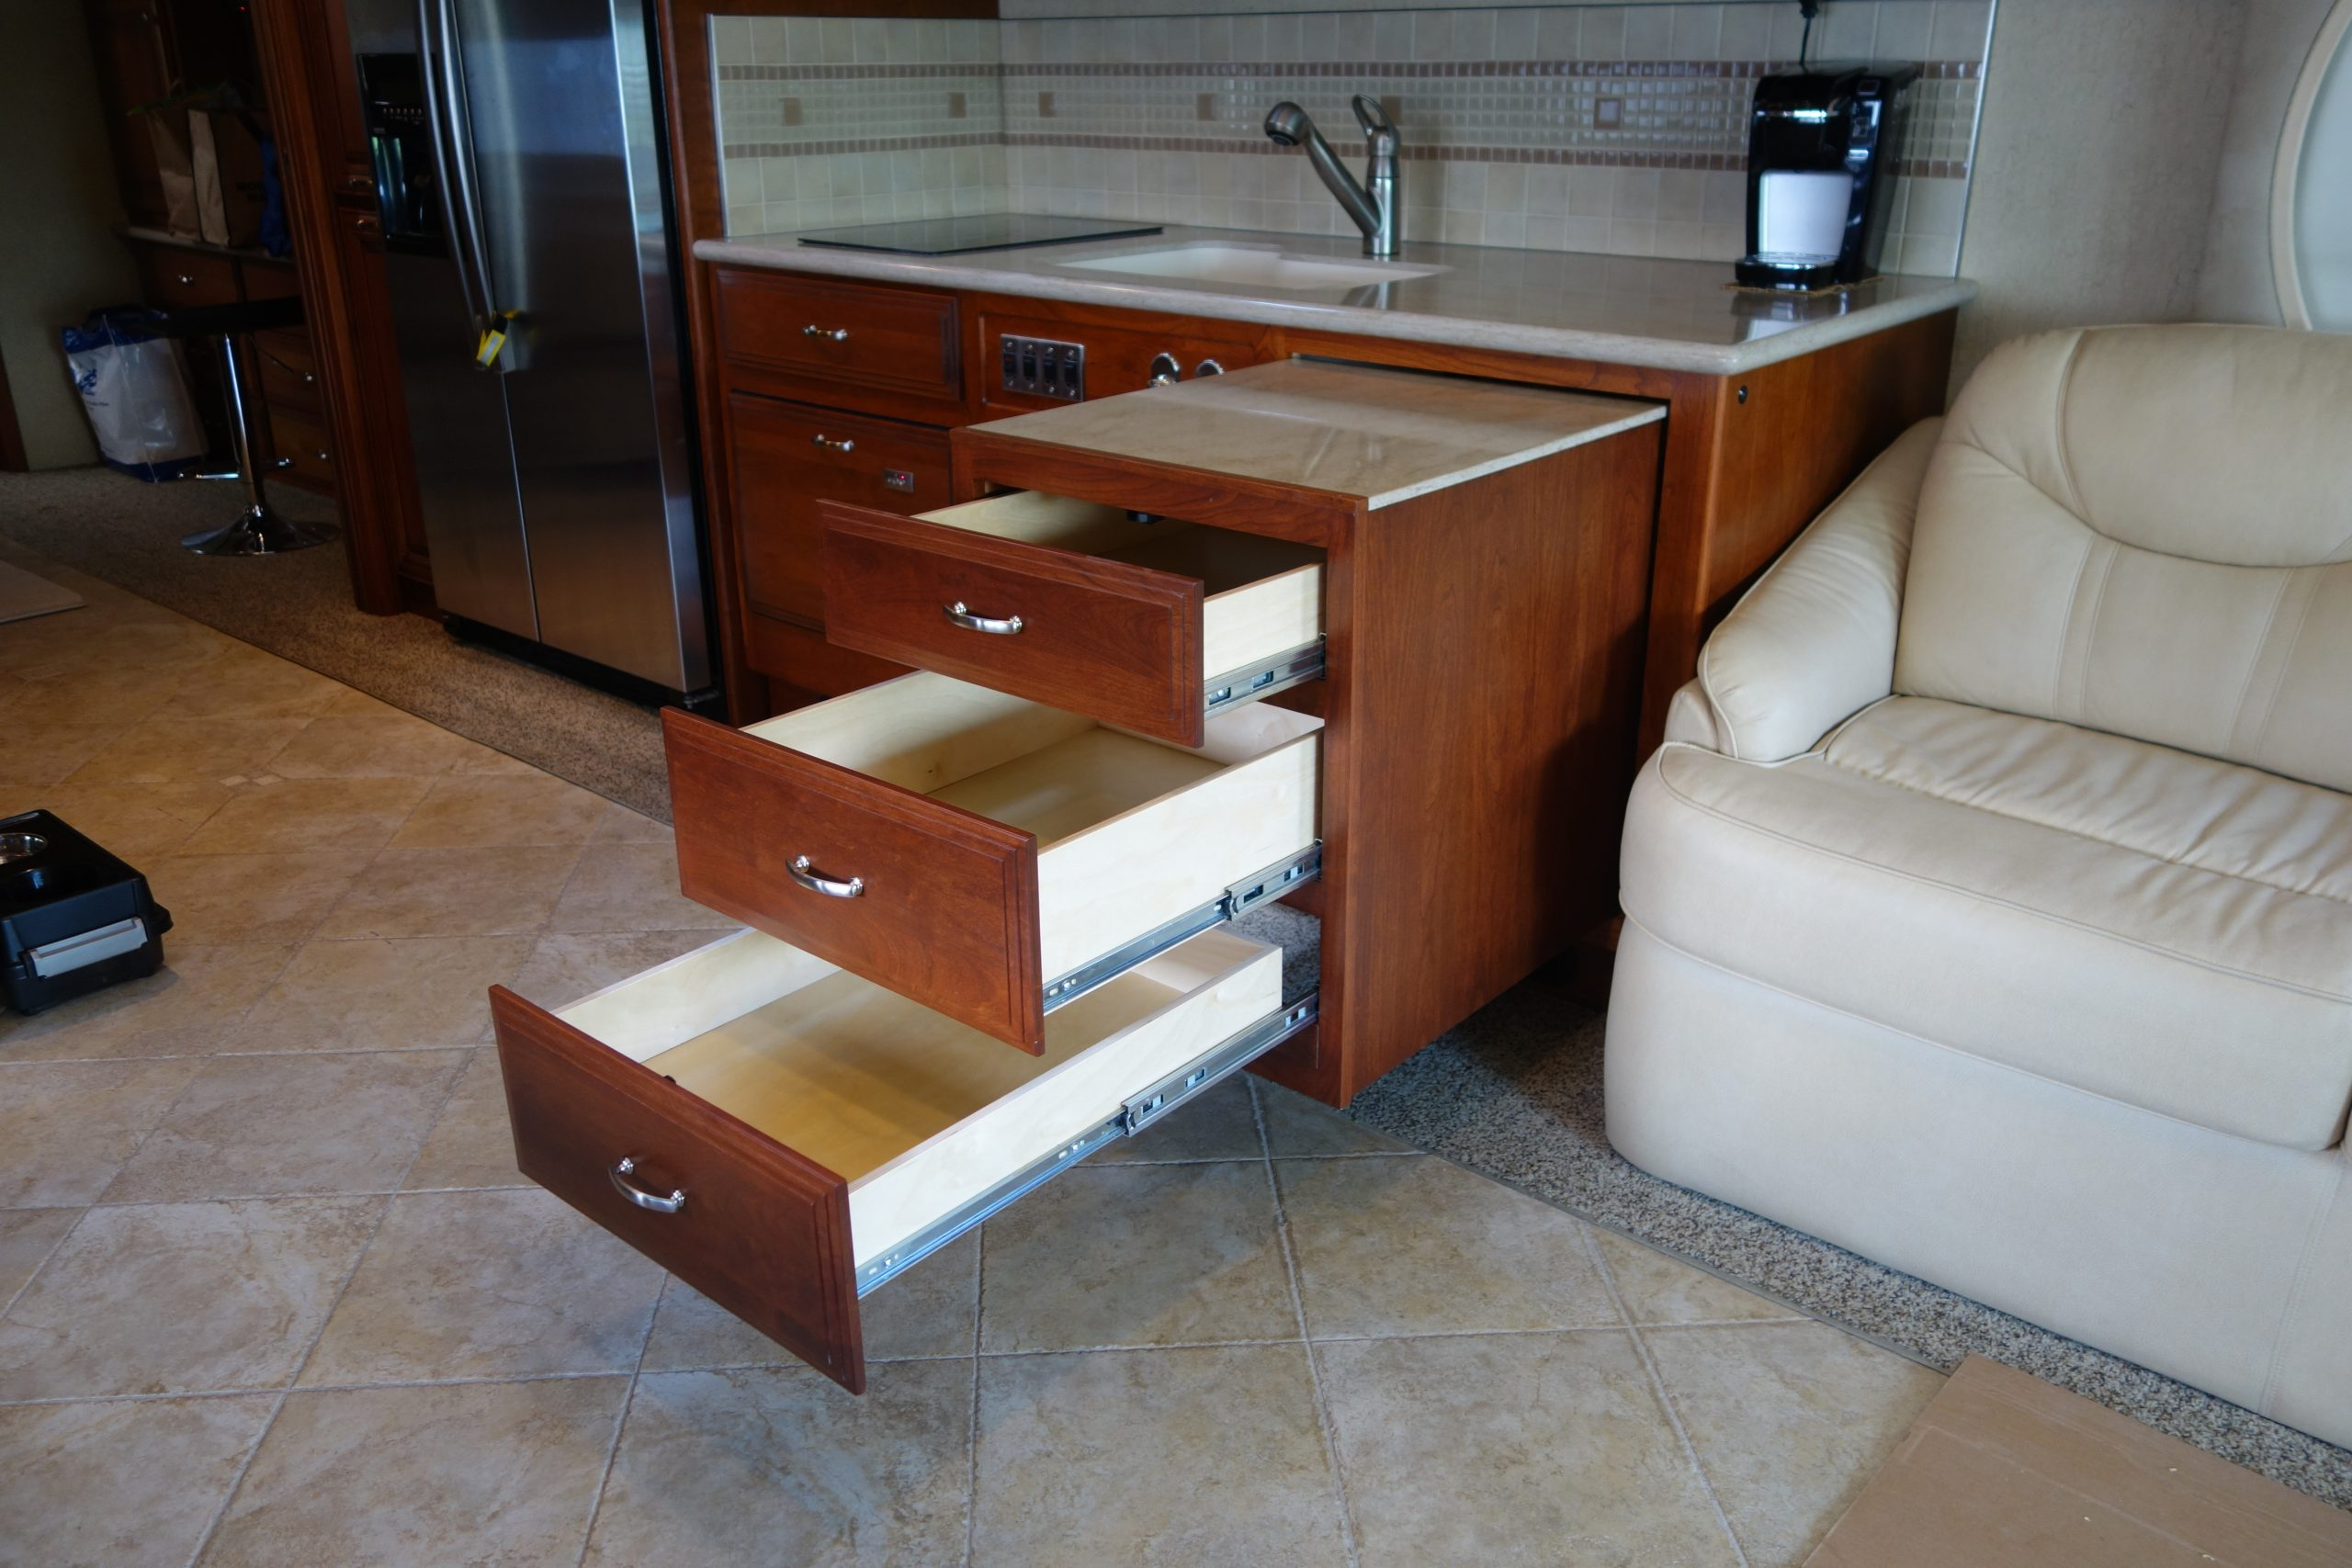 Pullout kitchen drawers with opened drawers